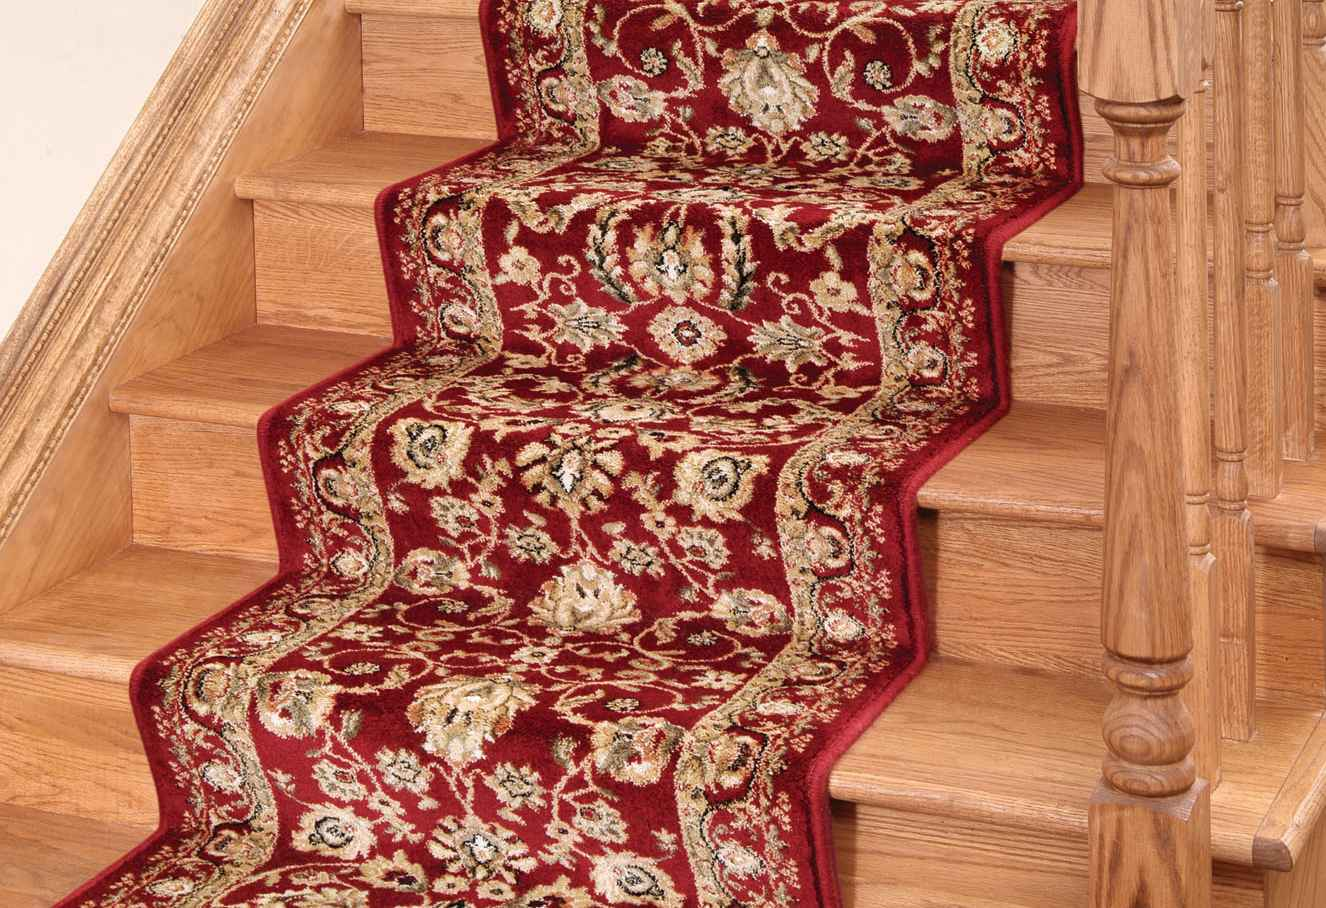 Carpet for stairs home depot - Carpet Runner For Stairs Home Depot